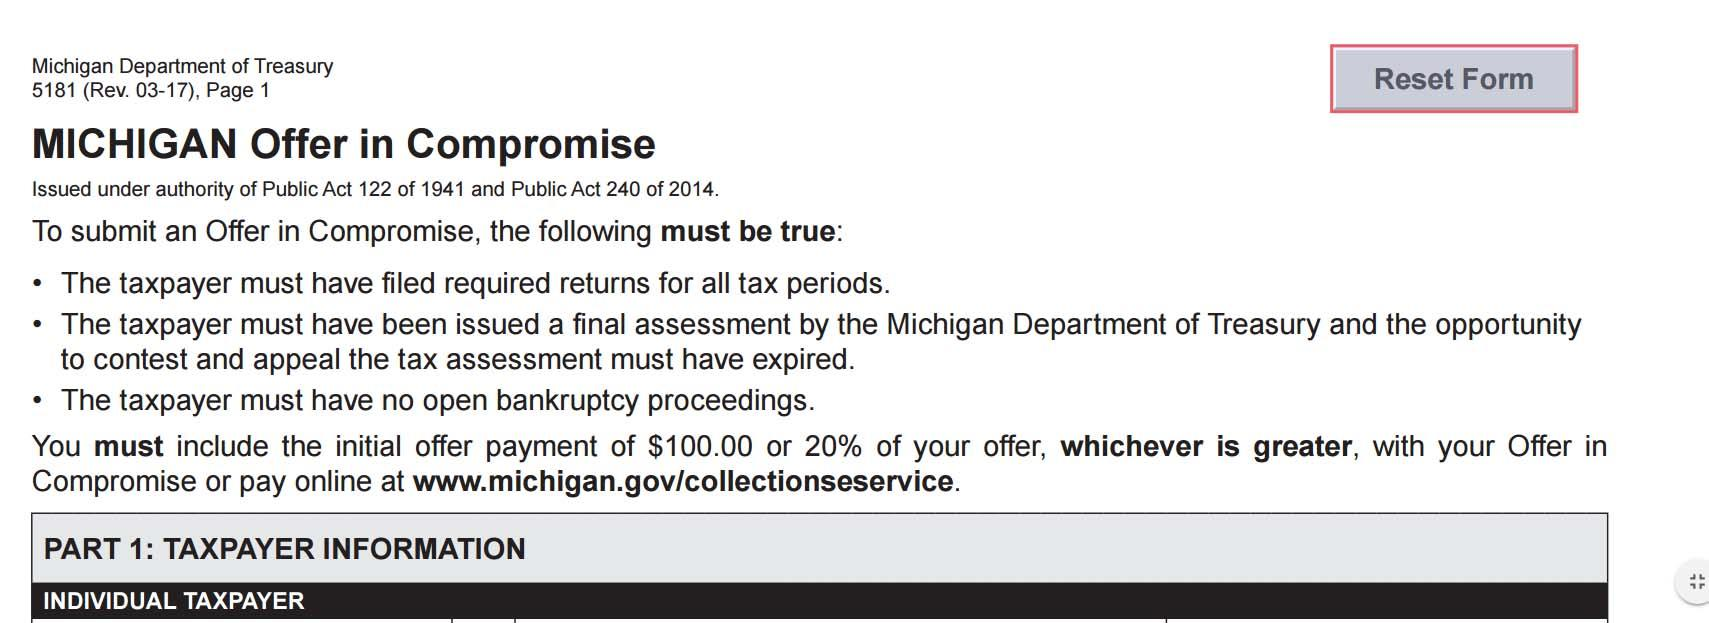 Irs Form Offer In Compromise Instructions